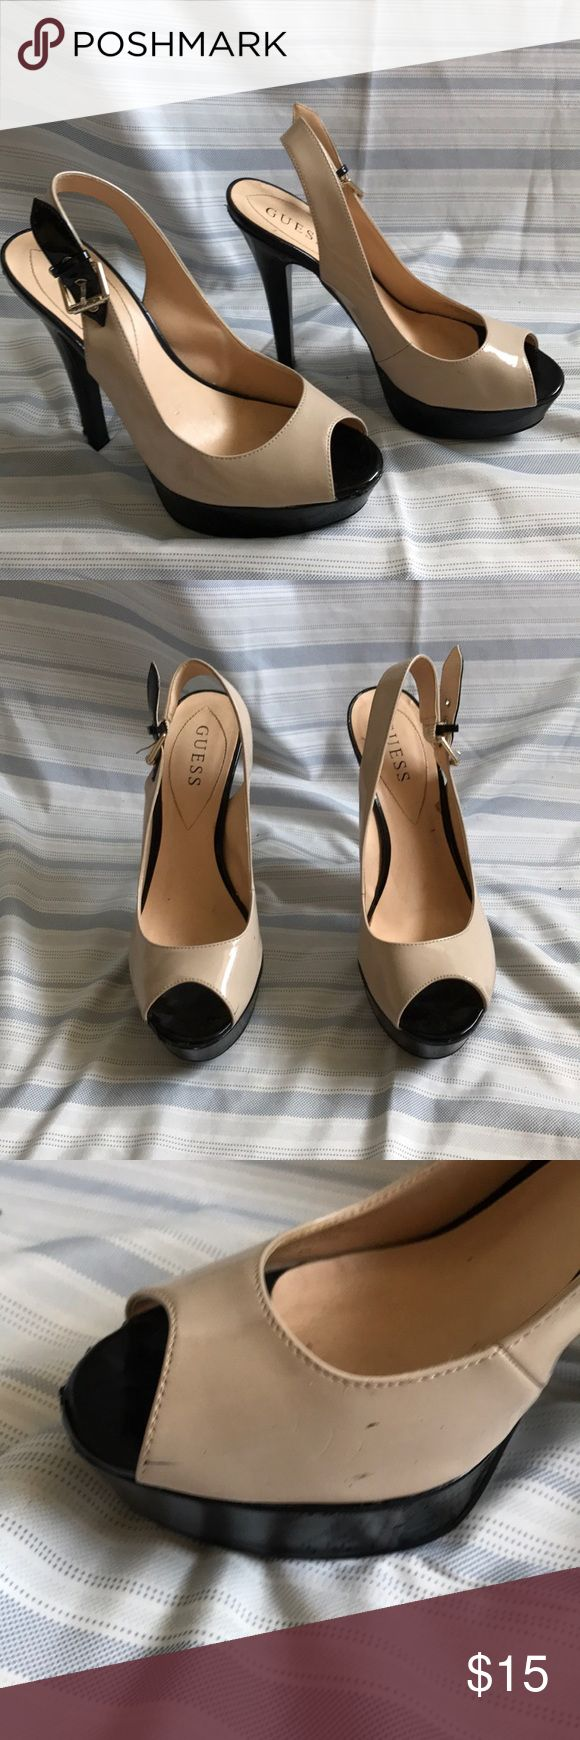 Guess two tone heels Guess two tone heels size 8. Minor scuffing shown in pictures Guess Shoes Heels